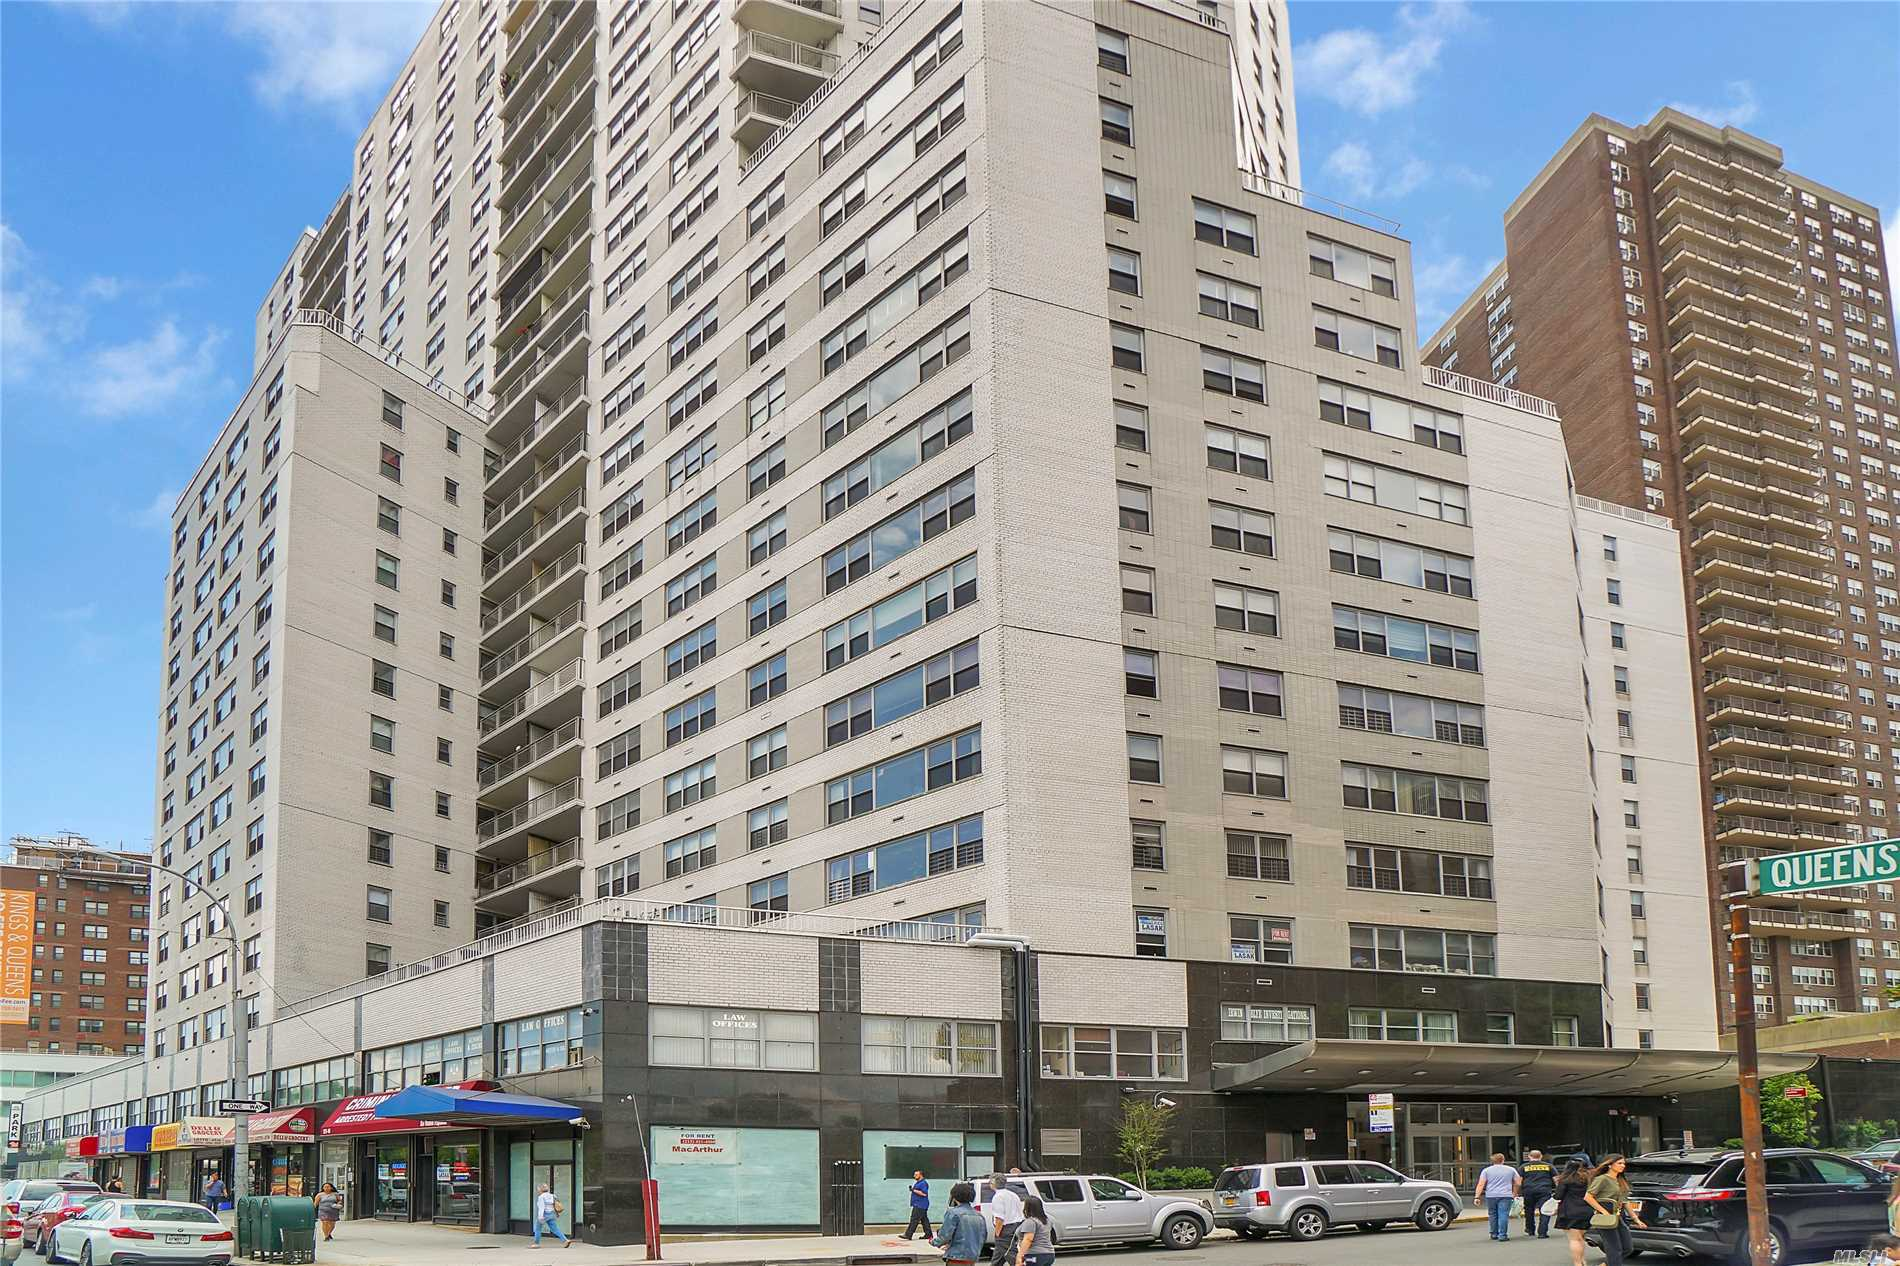 Amazingly large 3 Bedroom 3 Bath apartment, with formal dining and living rooms, lots of closets, corner unit with tons of windows - views galore! Terrace off the living room, stainless steel appliances, eat-in kitchen too! located a block from the E/ F train, 2 blocks to Kew Gardens LIRR Station, across from Courthouse, in the heart of Kew Gardens, close to everything. Rooftop deck with views galore!, private gym. Doorman building!